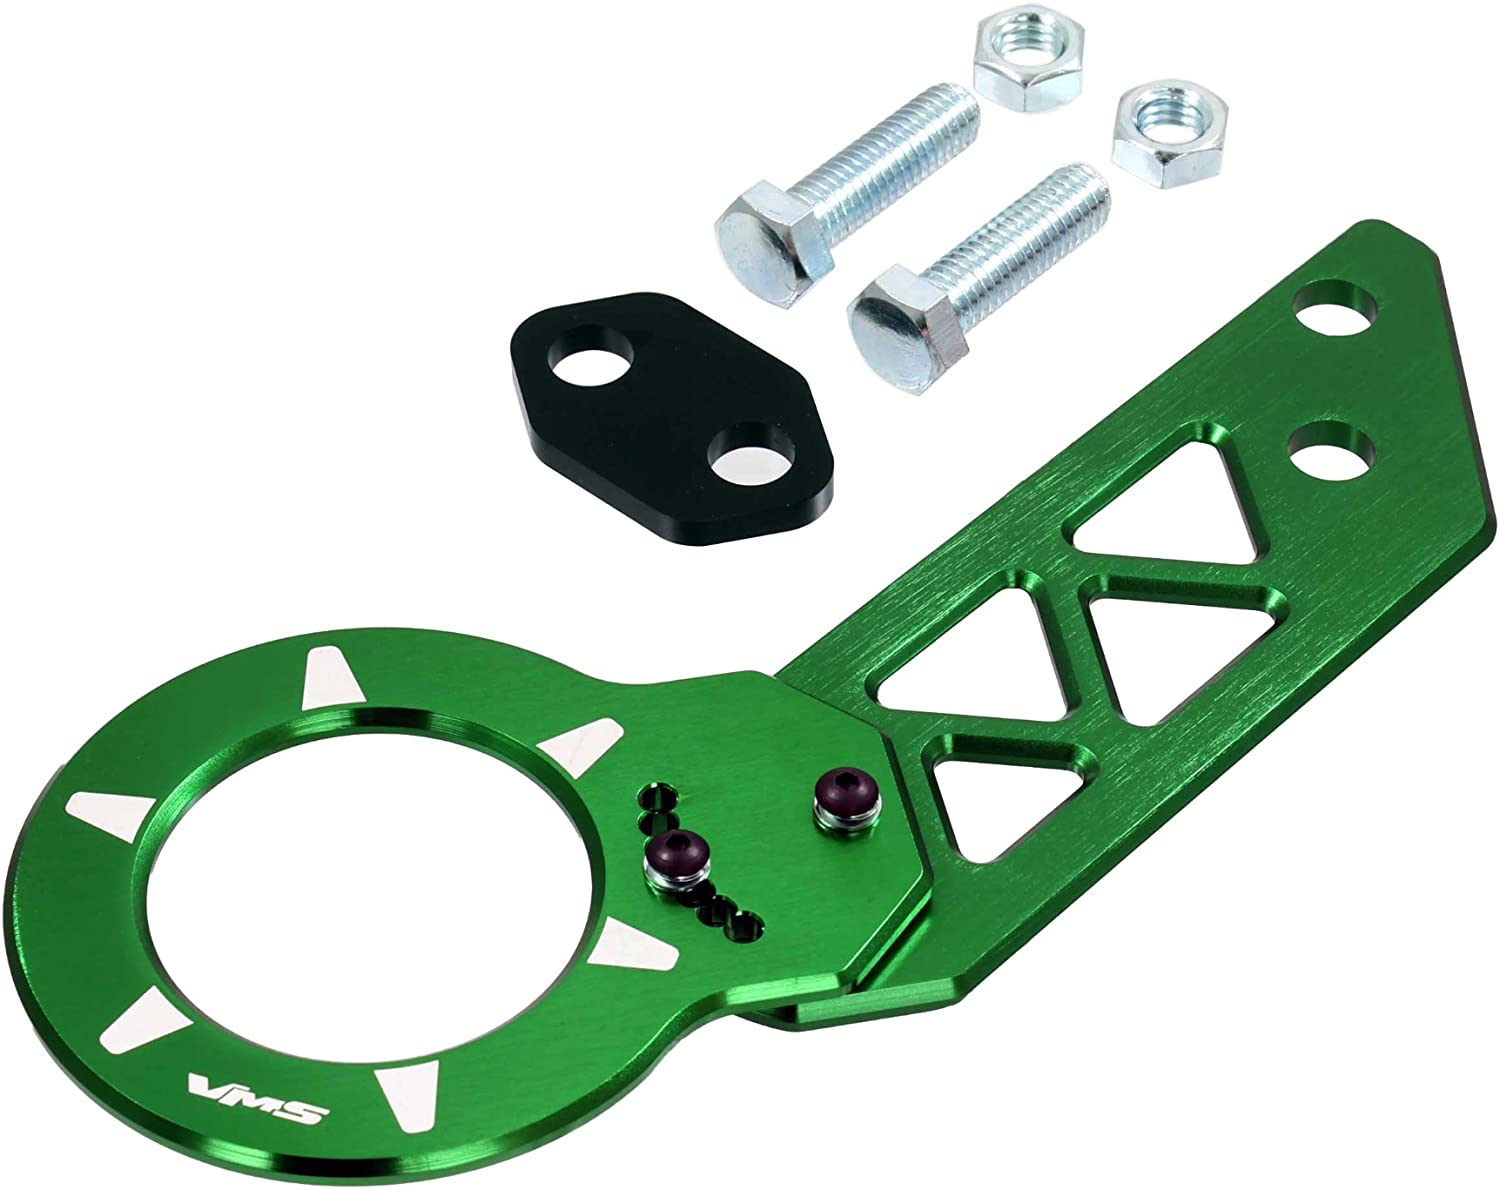 GREEN REAR ADJUSTABLE T6061 CNC Billet Anodized Aluminum Towing TOW HOOK for Honda Civic CRX CR-X Del Sol All Models (Brand New – Totally REDESIGNED) JDM